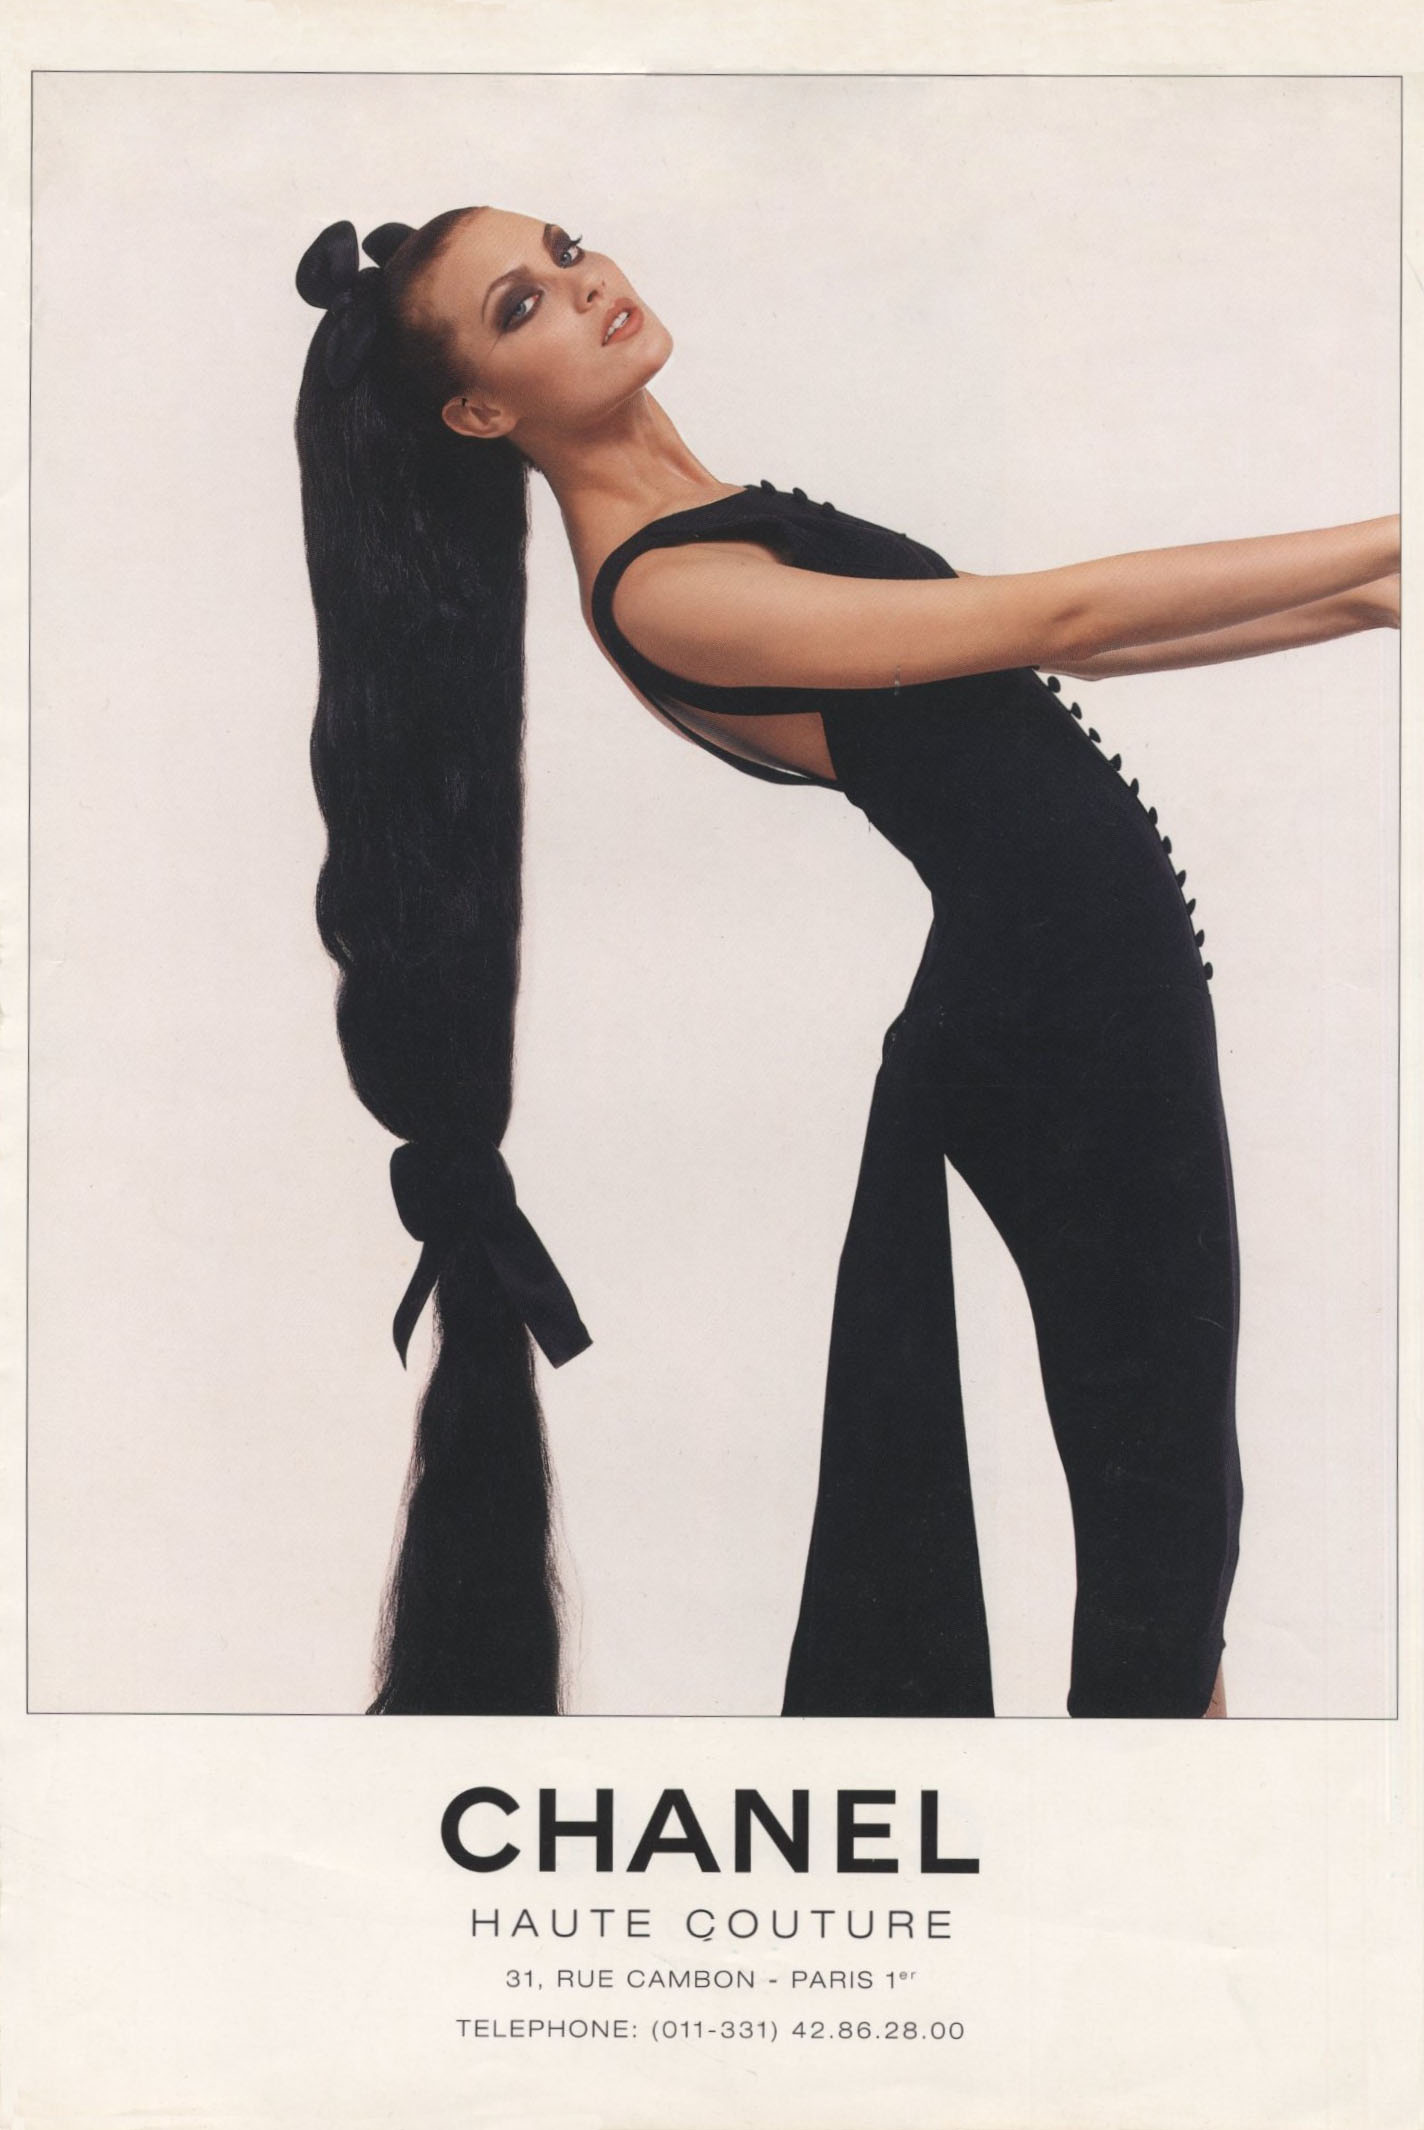 SHALOM HARLOW | CHANEL HAUTE COUTURE | AD | PHOTOGRAPHY KARL LAGERFELD | 1990s